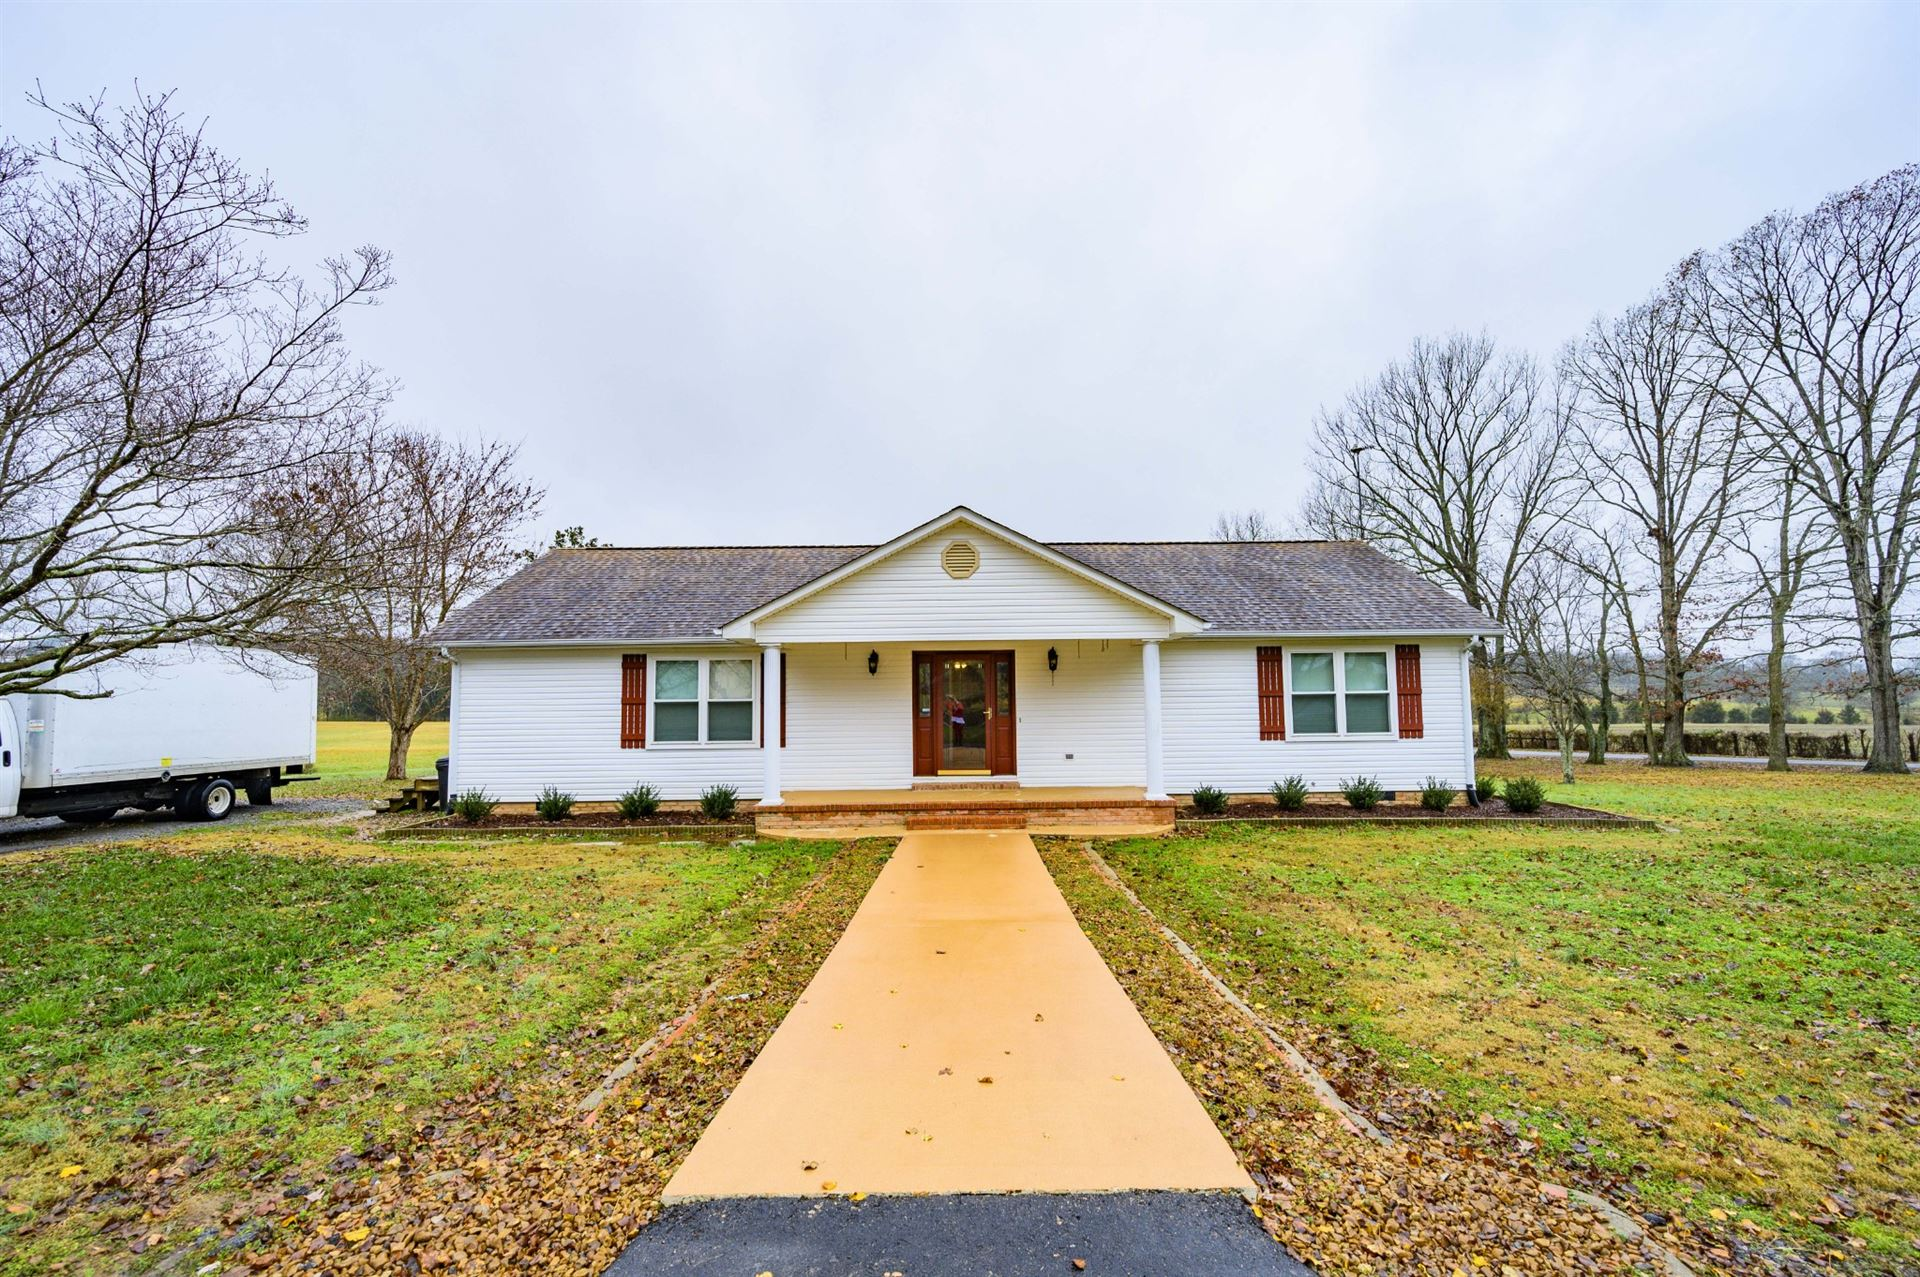 300 Naron Rd, Shelbyville, TN 37160 - MLS#: 2214337